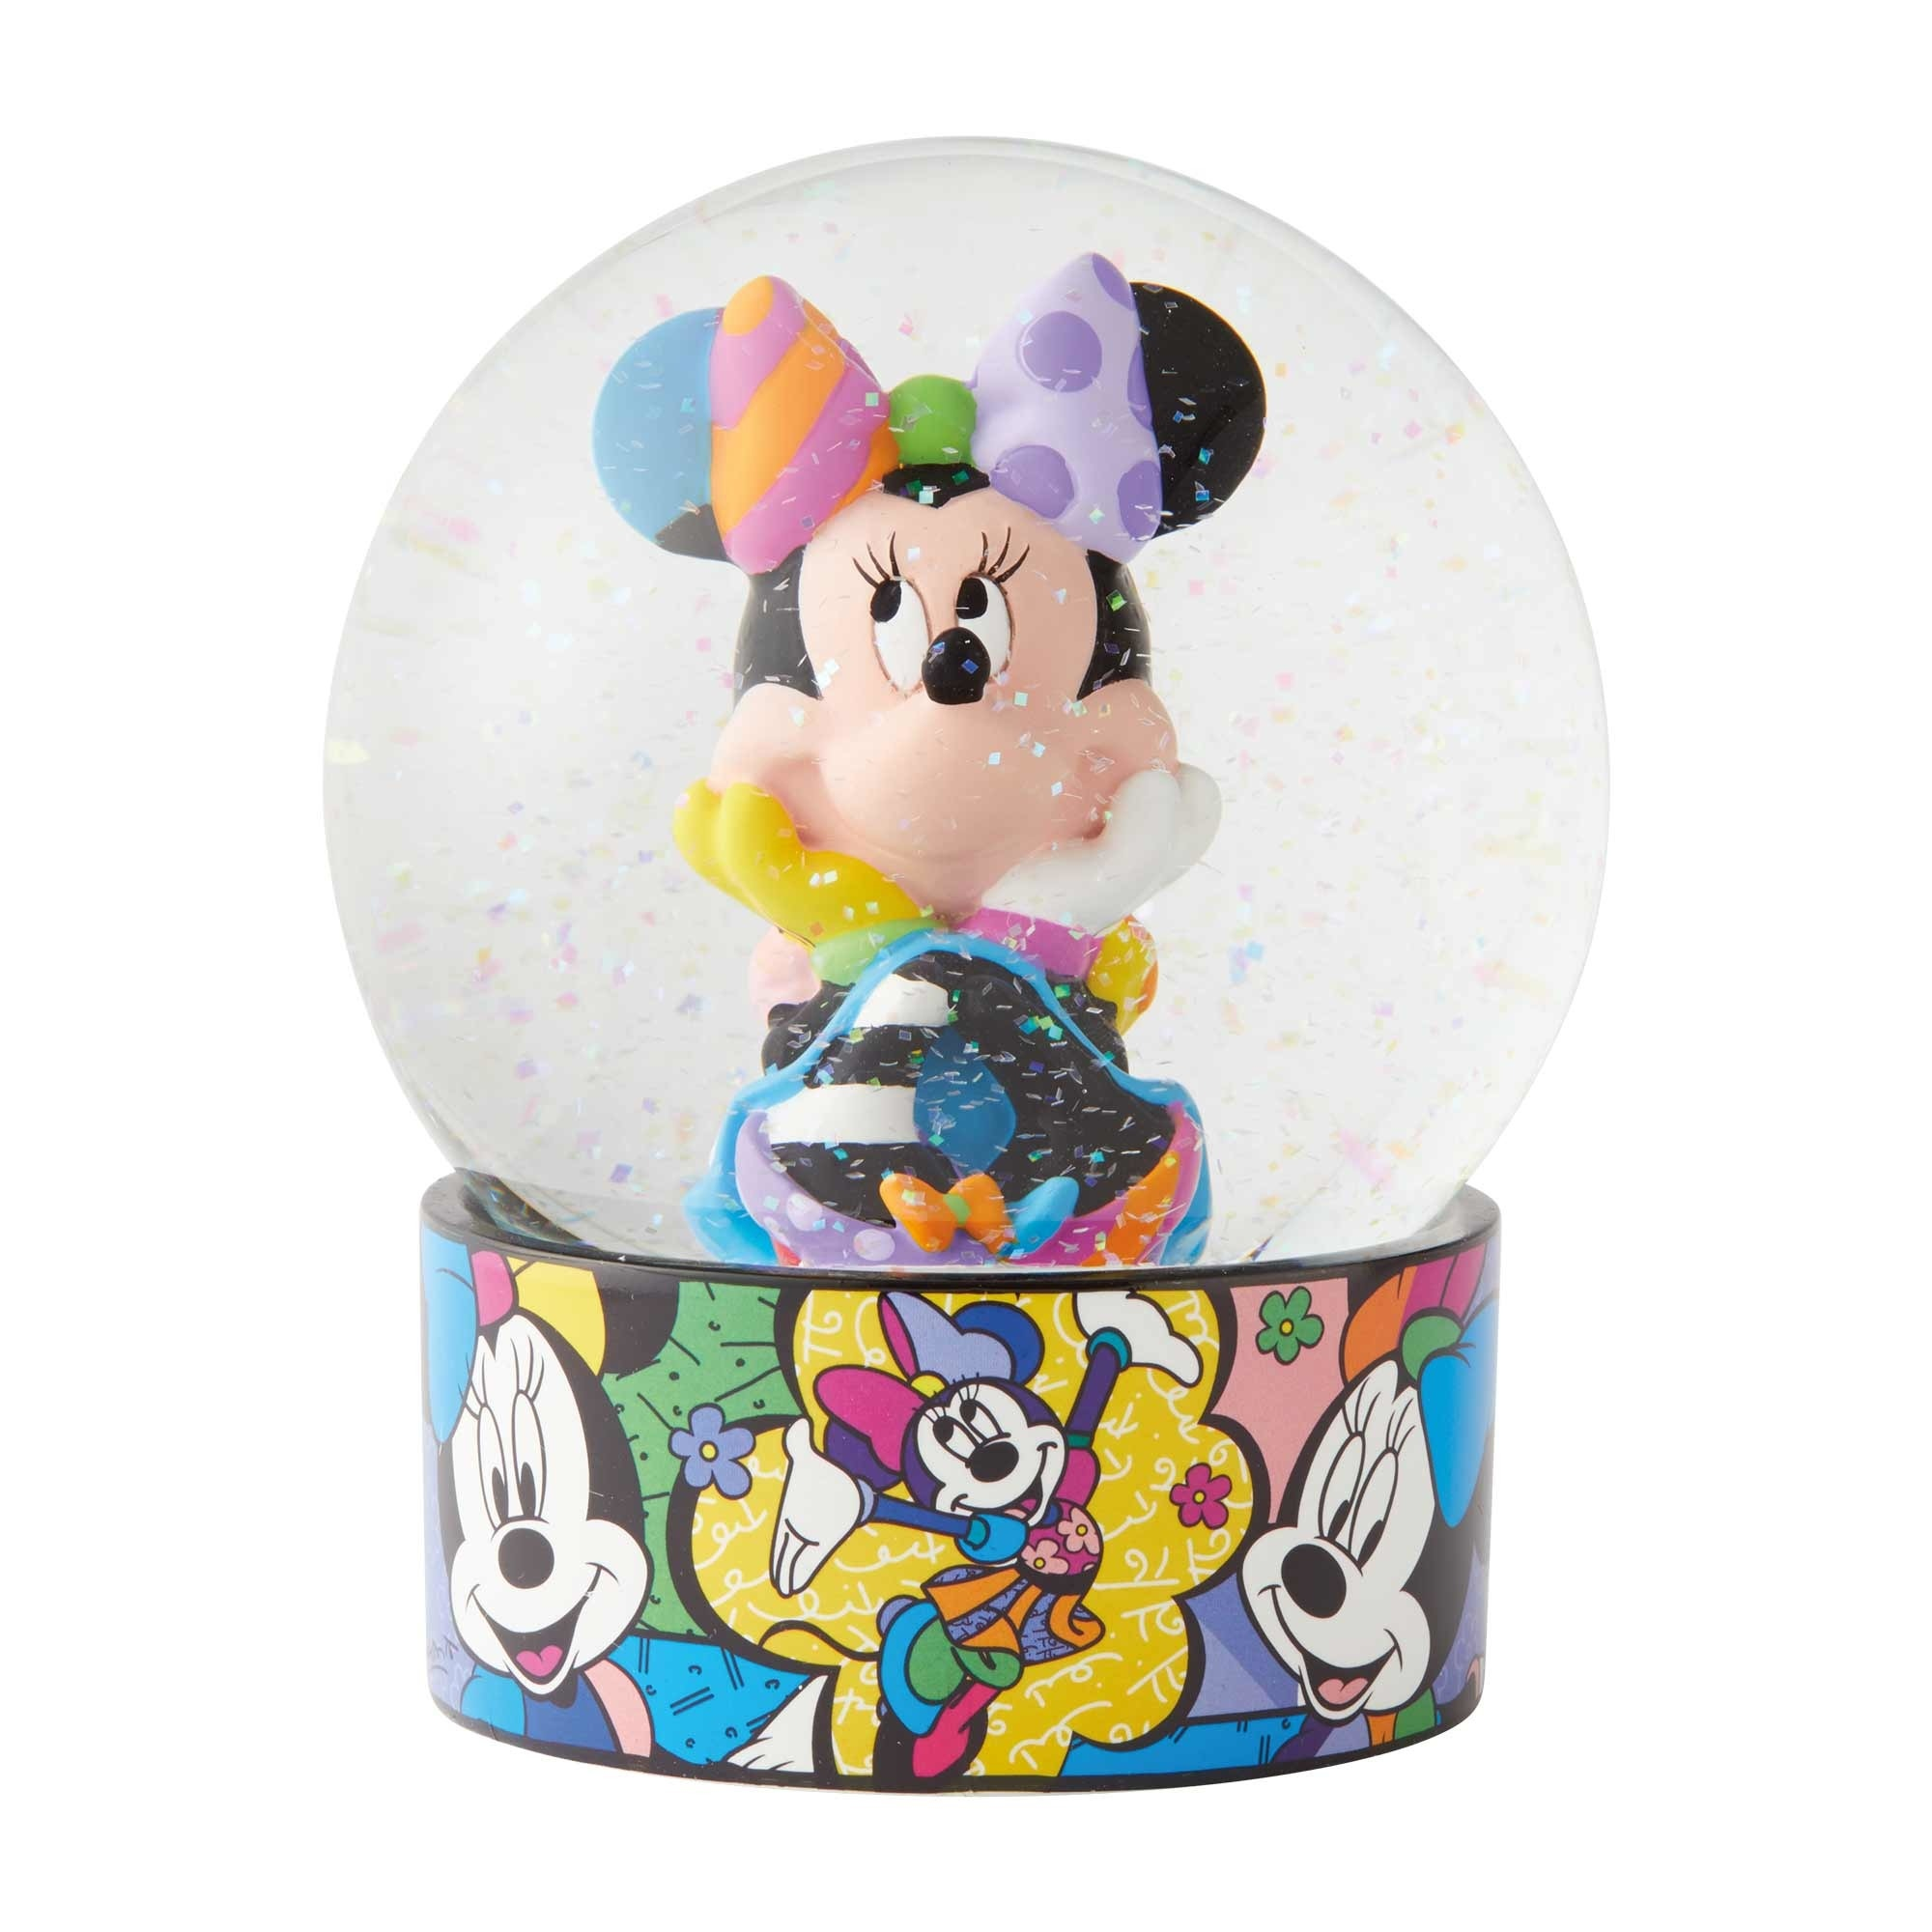 Disney by Britto 6003350 Minnie Waterball